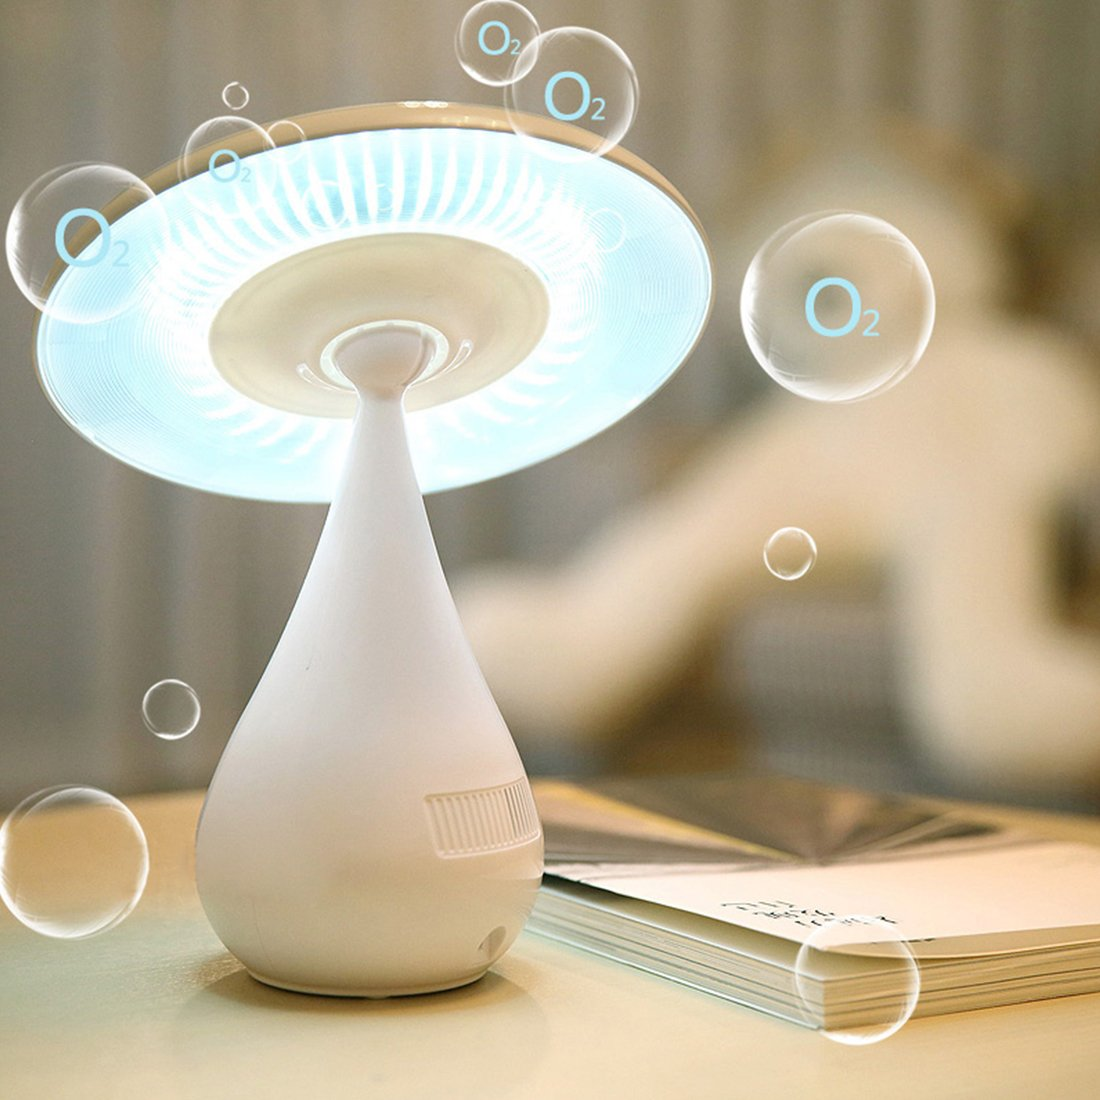 Adjustable Mushroom Touch Air Purifying LED Lamp Night Light Lamp Kids USB Charging Decoration